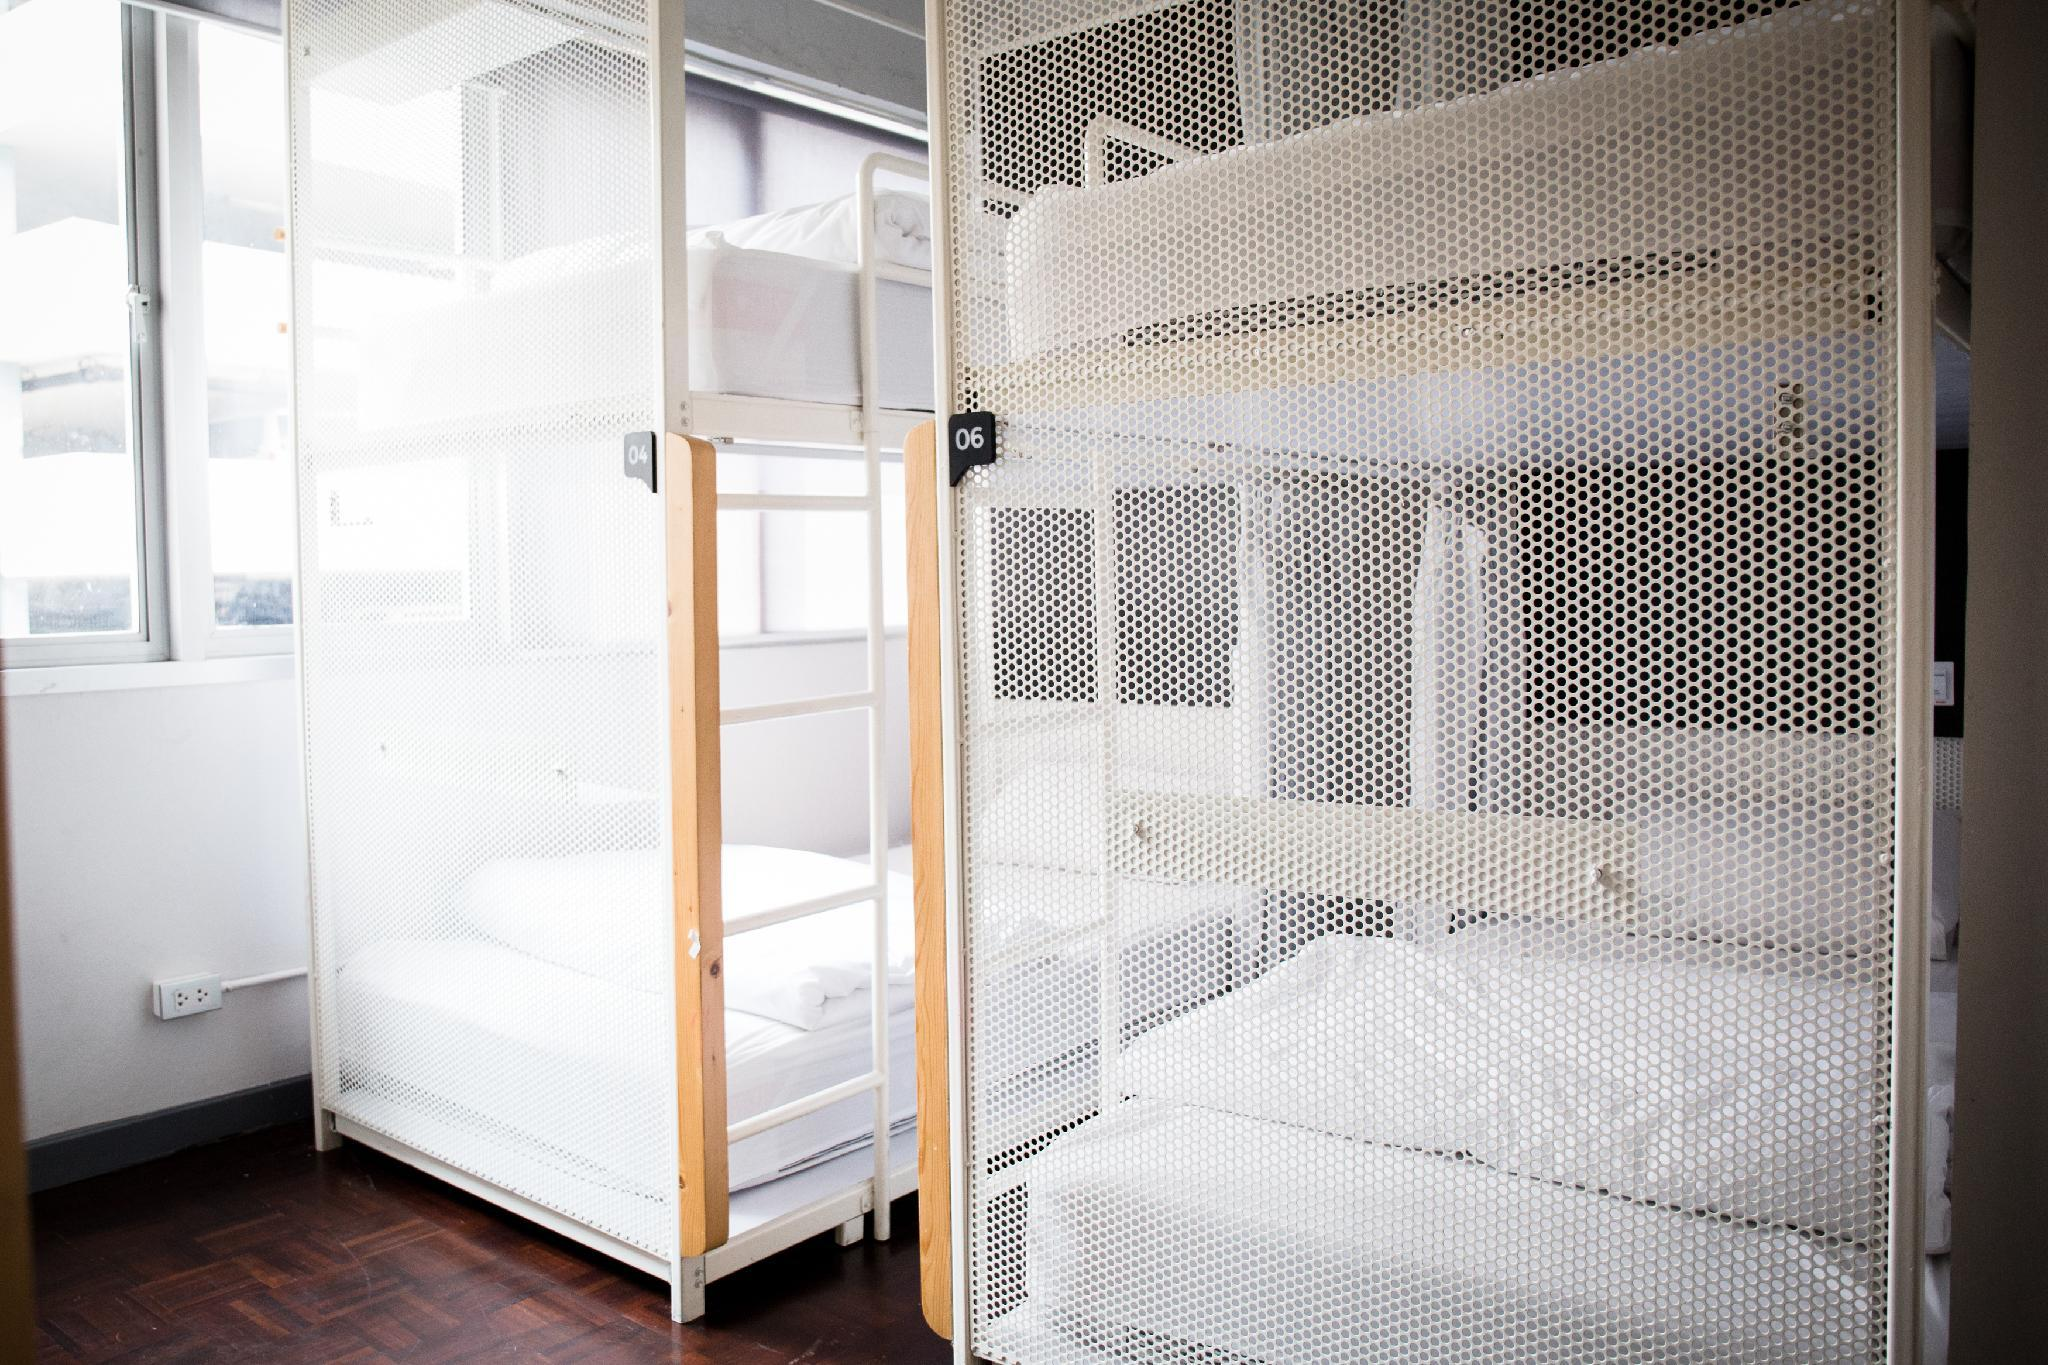 Bunk Bed in 6-Bed Dormitory(Mixed)